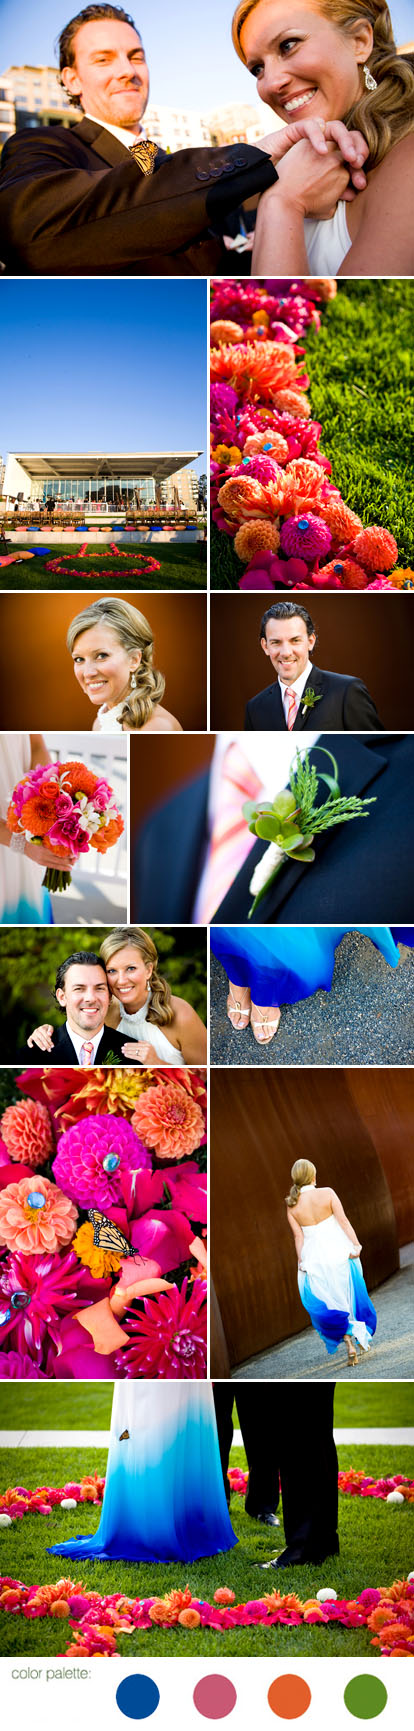 Stephanie Cristalli Photography, Indian inspired summer wedding, pink, orange blue and green wedding color palette